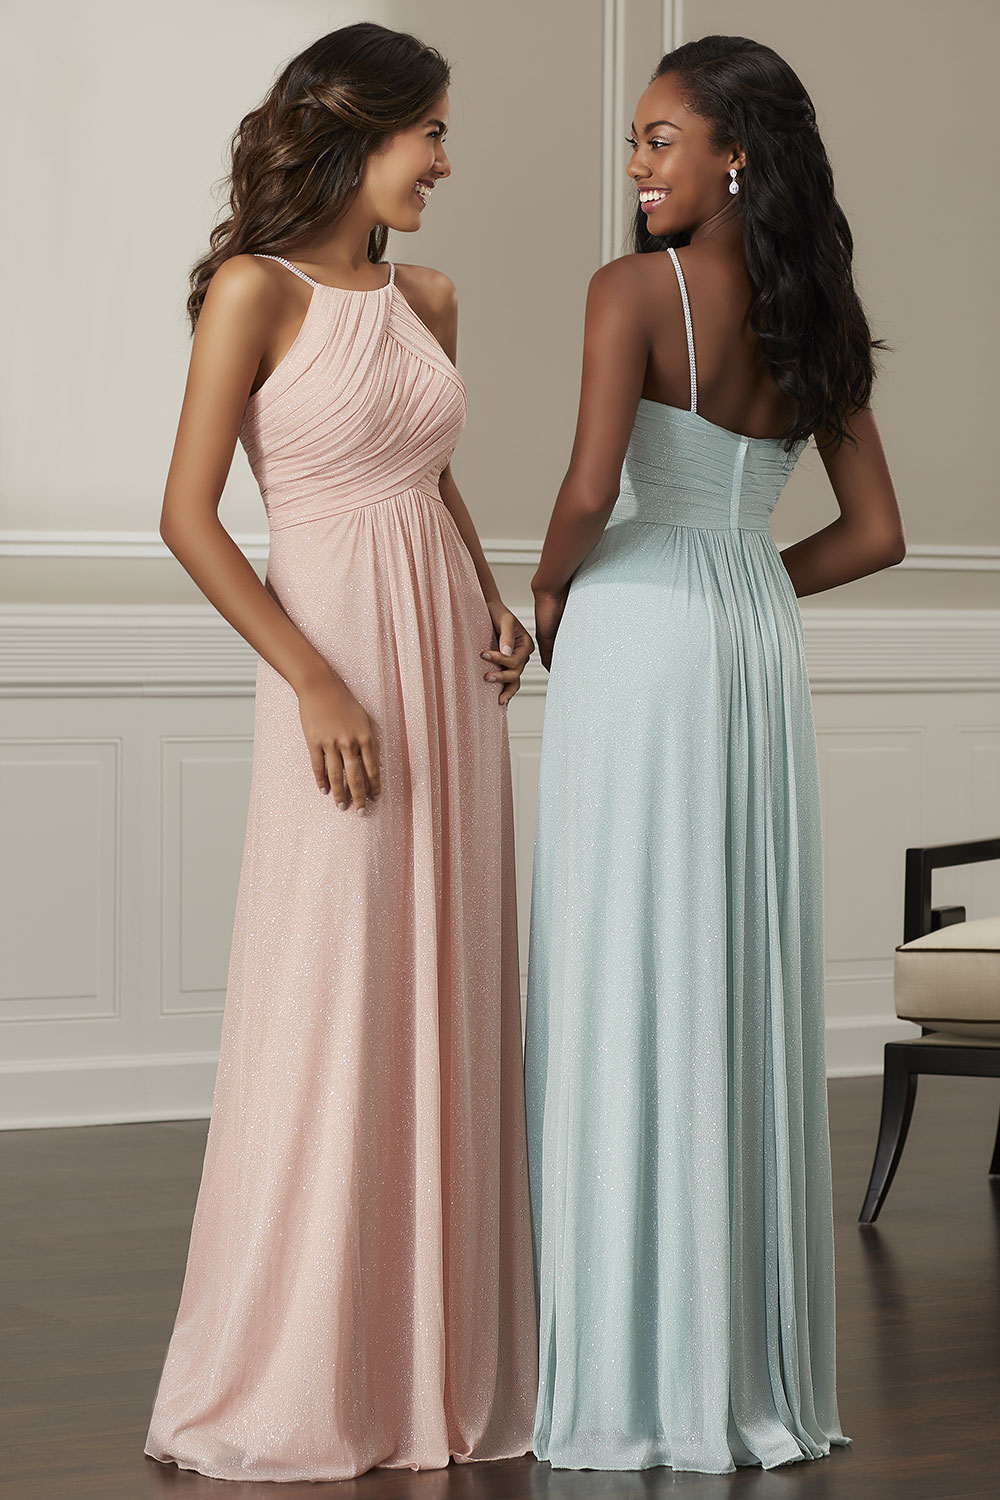 bridesmaid-dresses-jacquelin-bridals-canada-26831